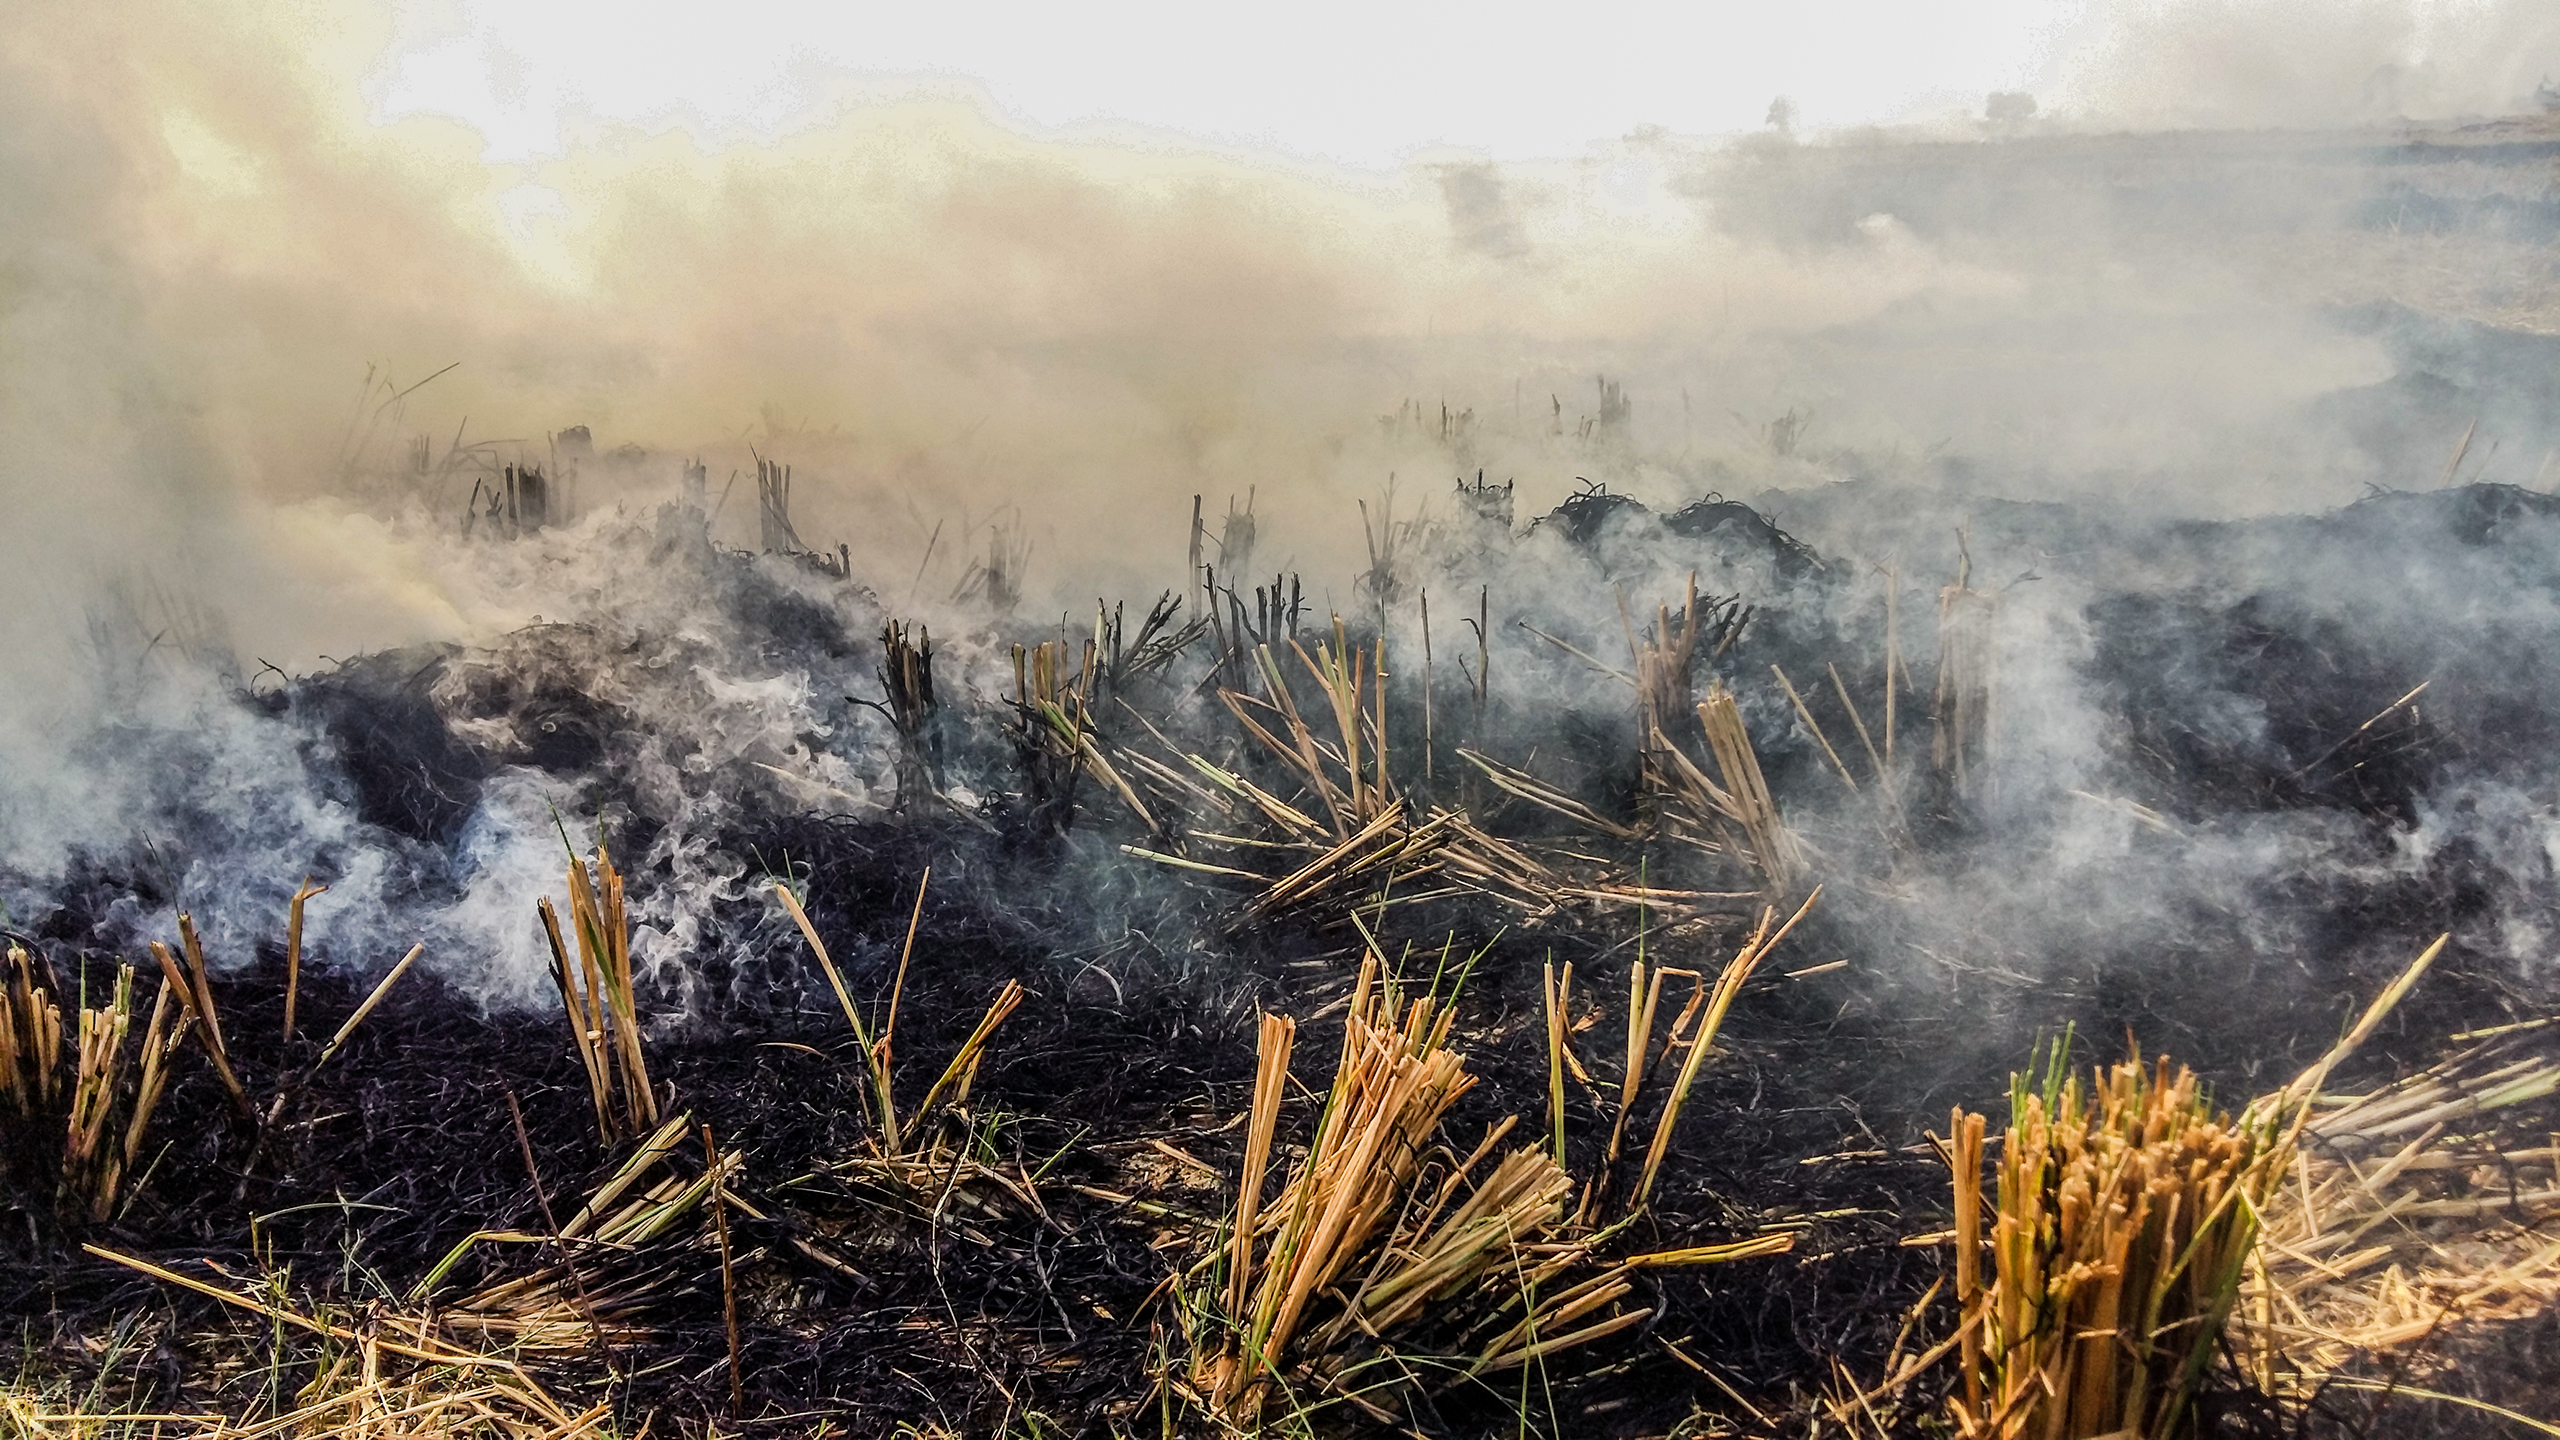 The burning of crop residue, or stubble, across millions of hectares of cropland between planting seasons is a visible contributor to air pollution in both rural and urban areas. (Photo: Dakshinamurthy Vedachalam/CIMMYT)